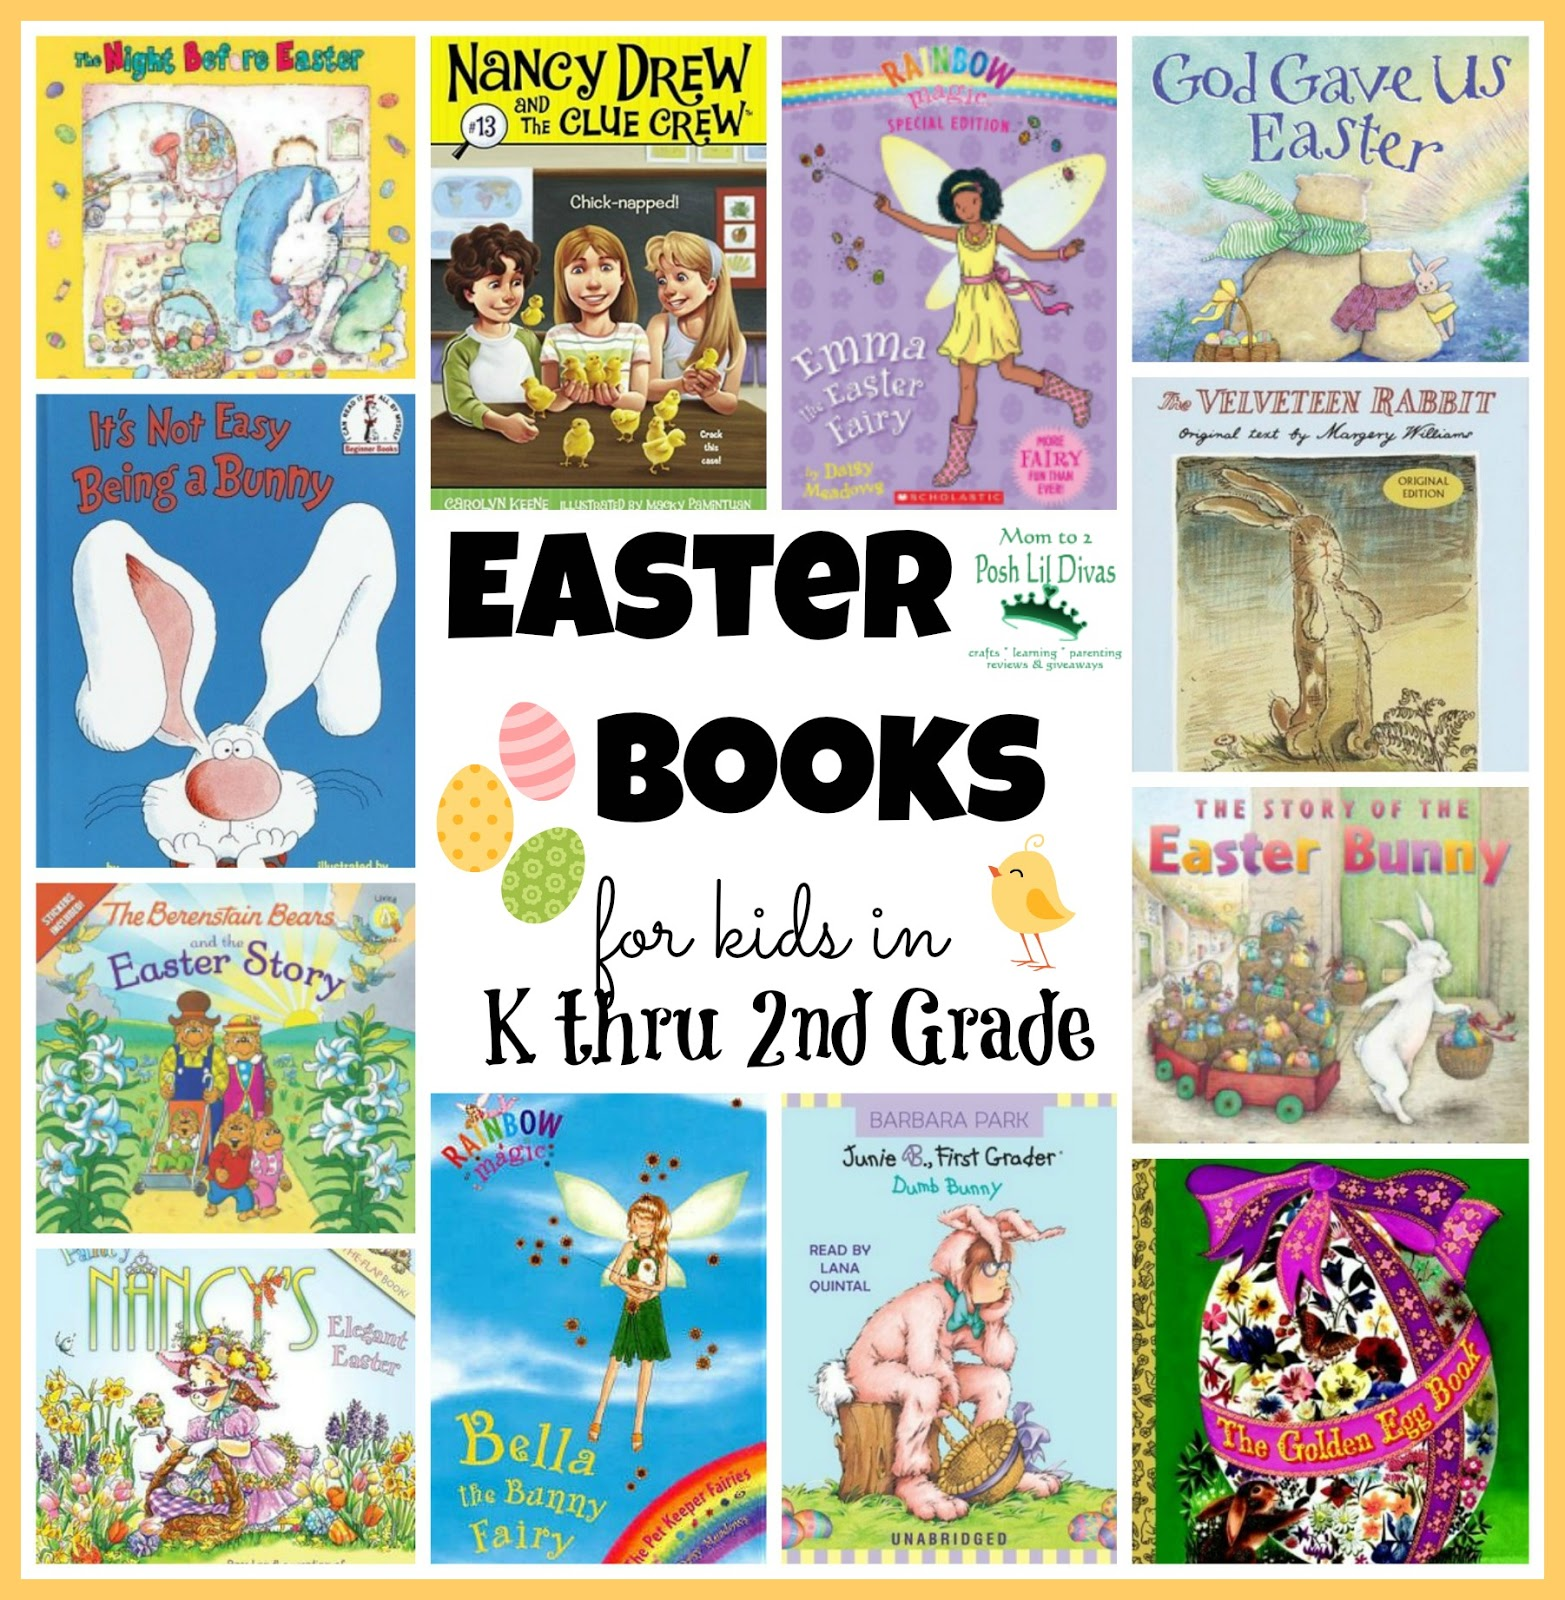 Mom To 2 Posh Lil Divas Easter Books For Kids In K Thru 2nd Grade